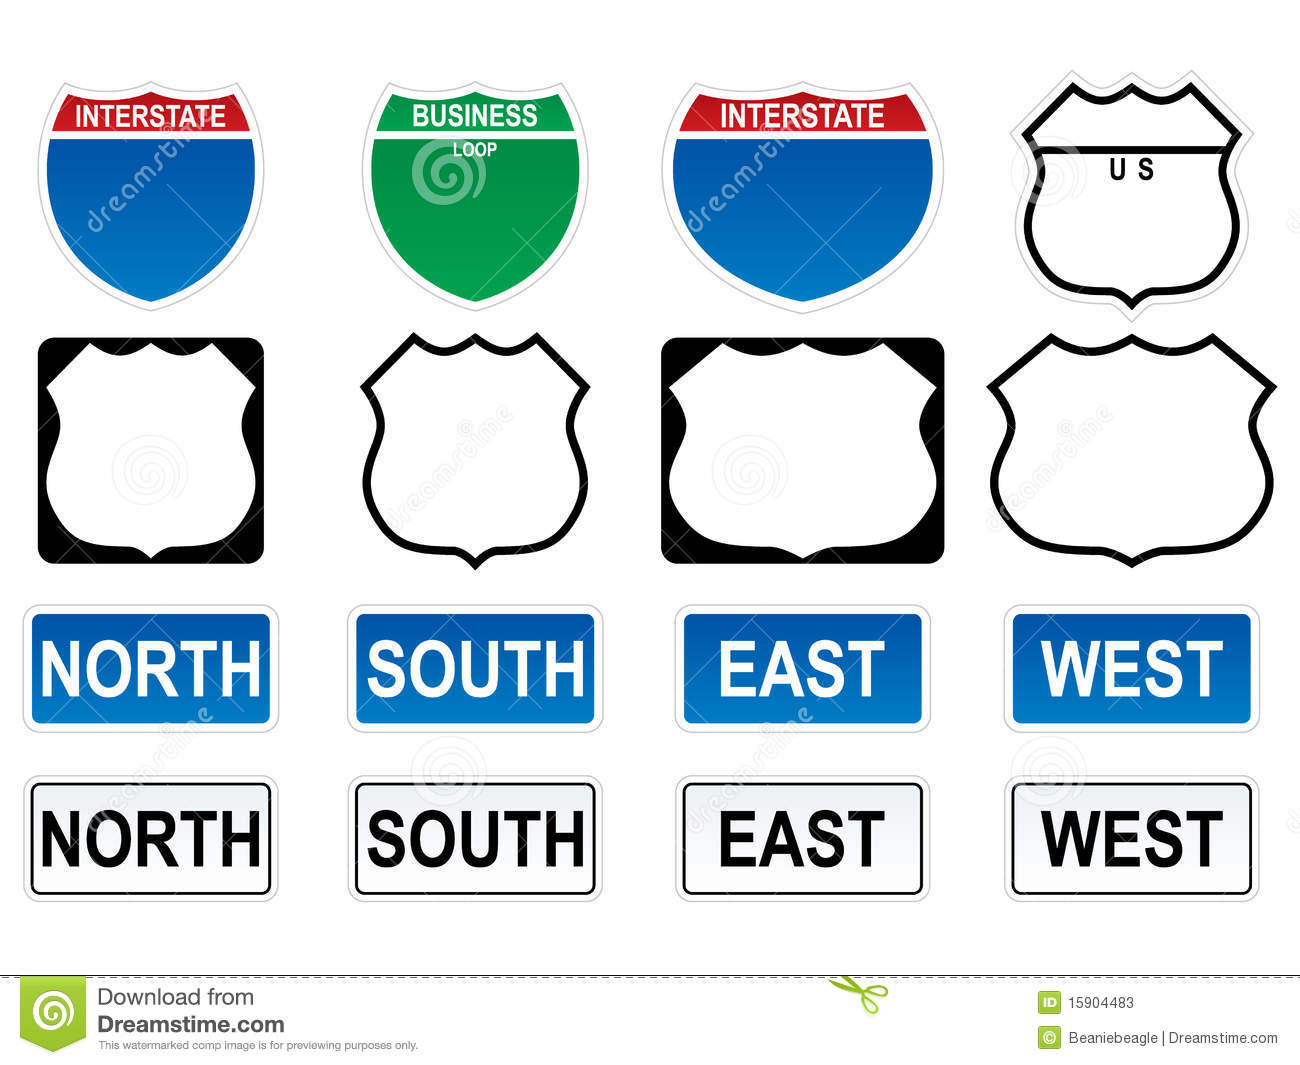 Highway Map Symbols And Meanings